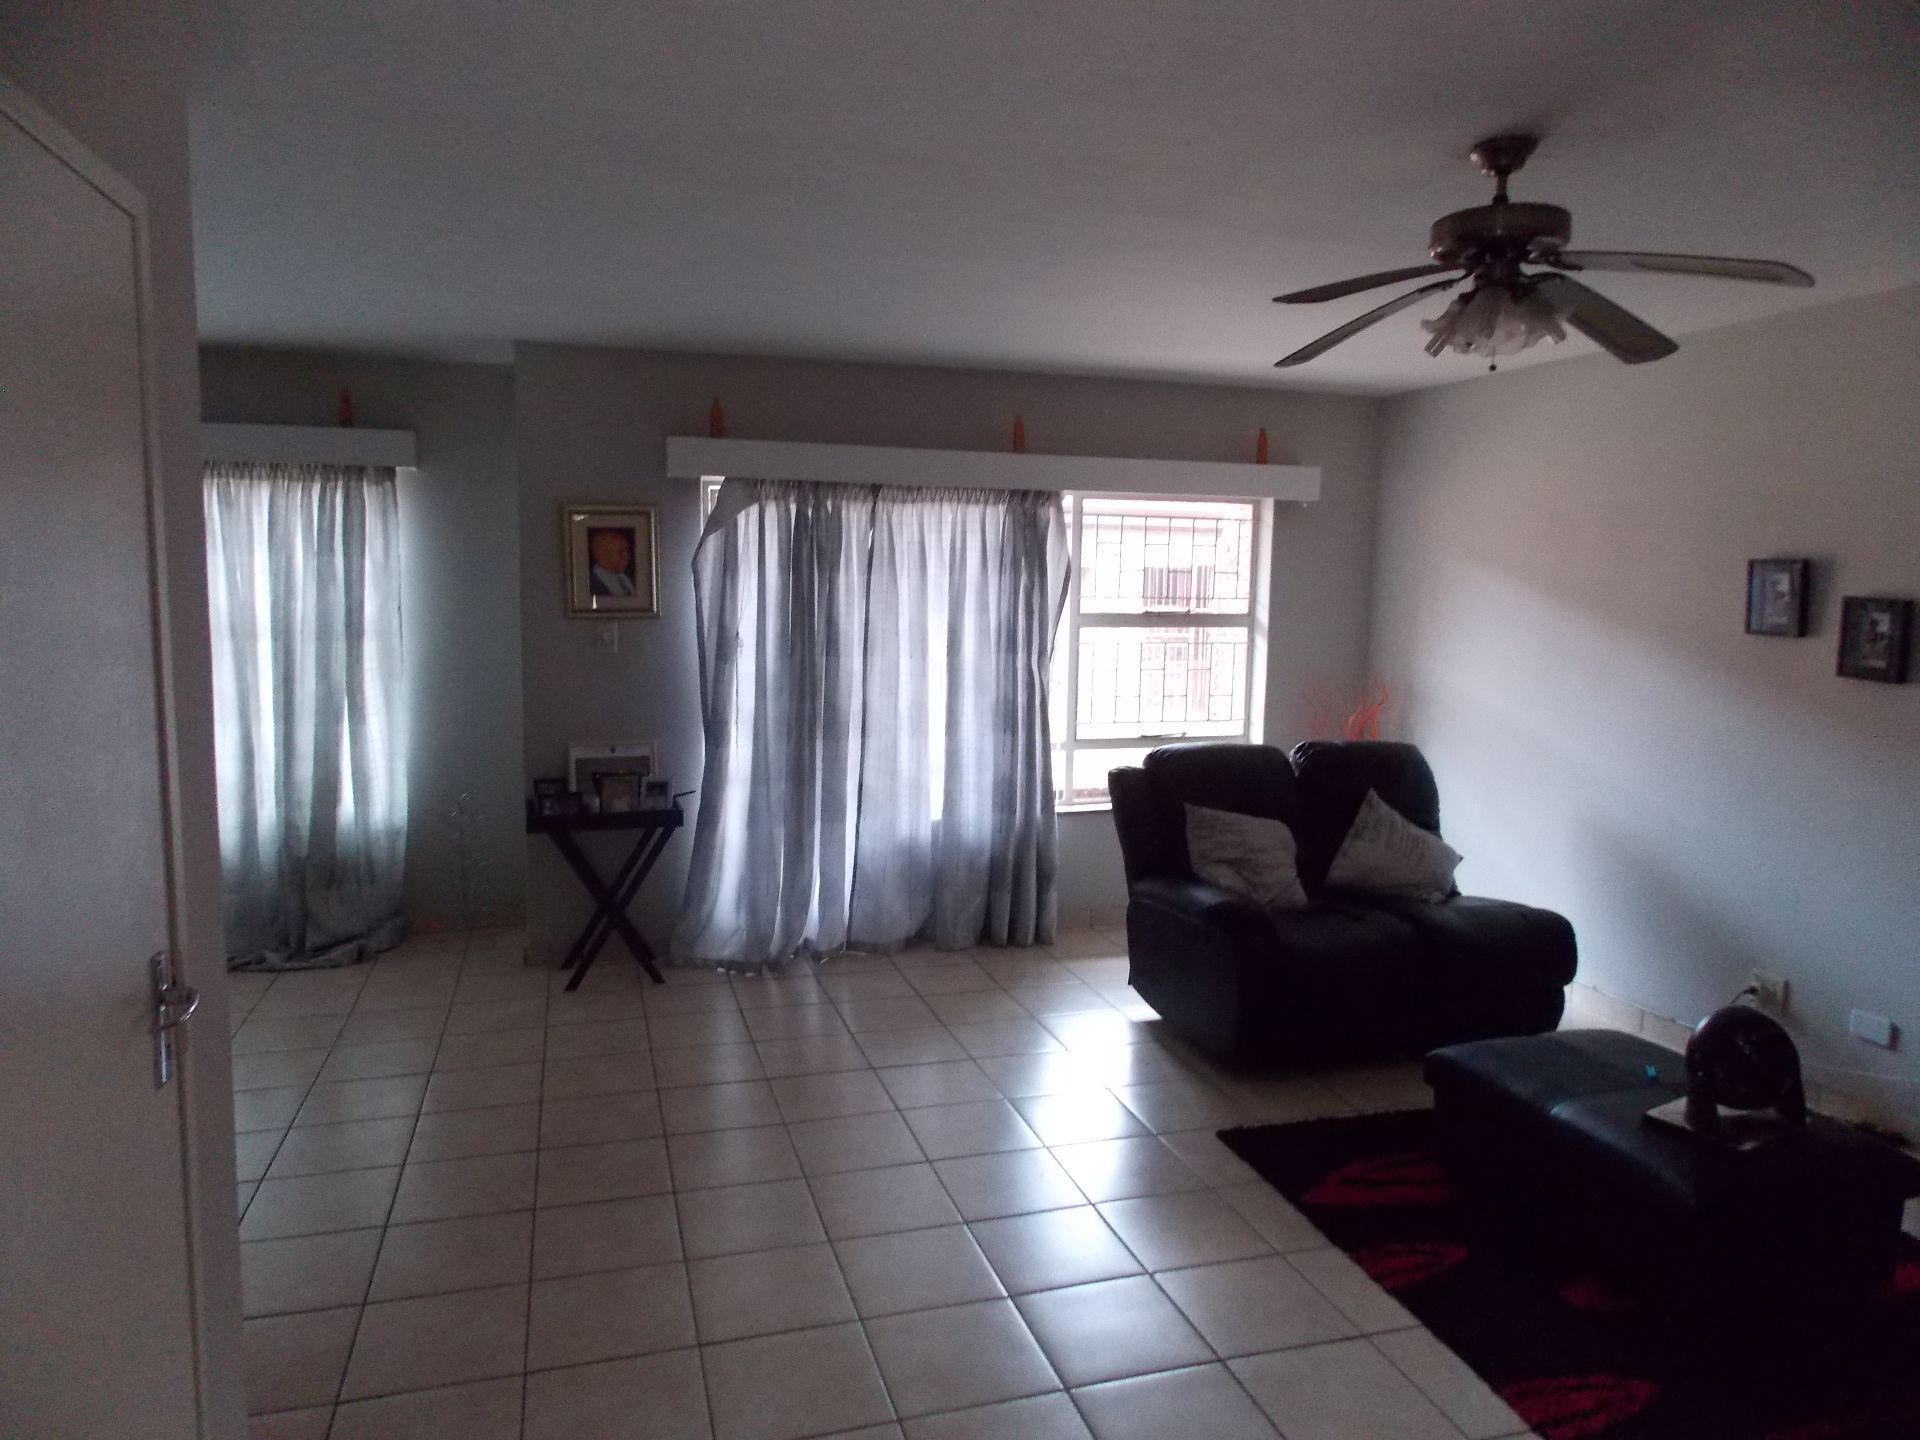 Potchefstroom Central property for sale. Ref No: 13449640. Picture no 7